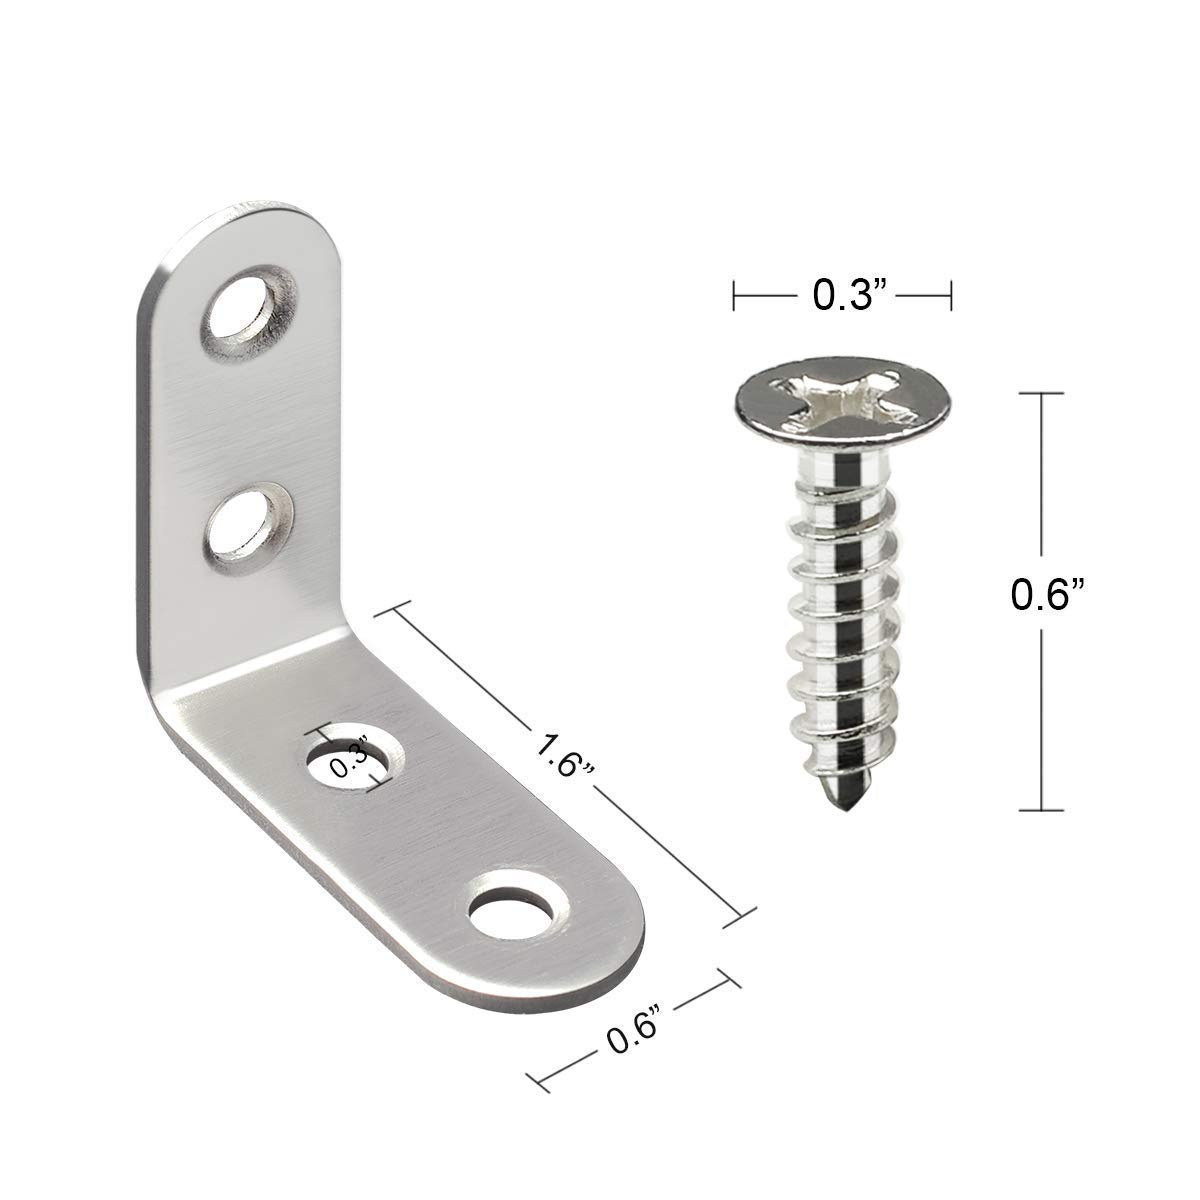 Amadeus X Corner Brace 40mm40mm Right Angle Shelf l Shaped Brackets for Furniture Shelves Corner Brackets Stainless Steel with Screws 16 Pieces